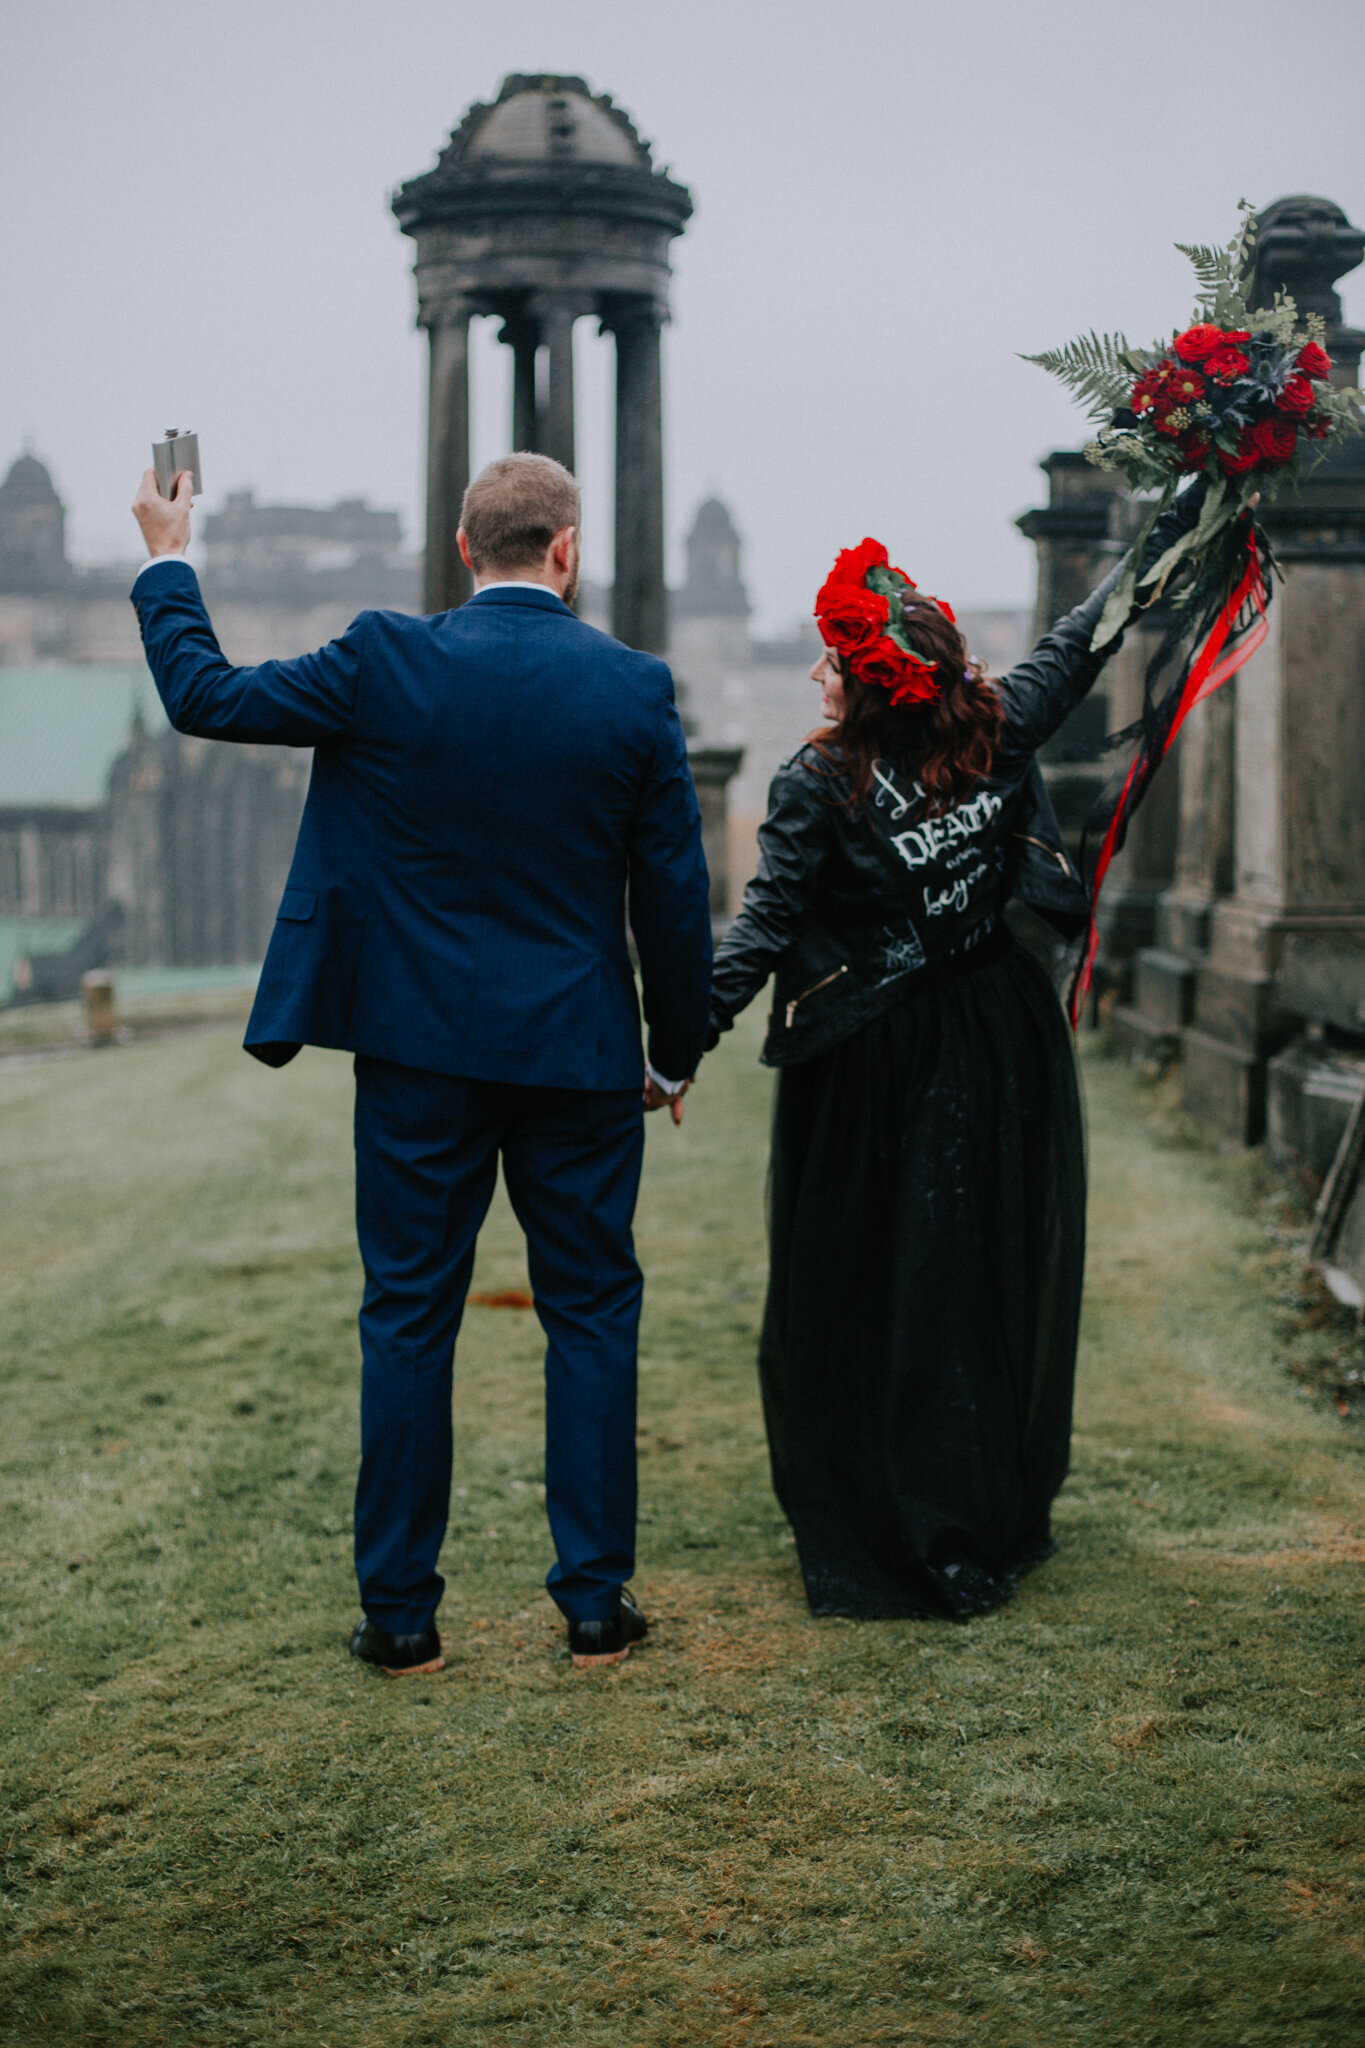 Alternative Quirky Halloween Glasgow City Wedding Photographer-J31A0915.jpg